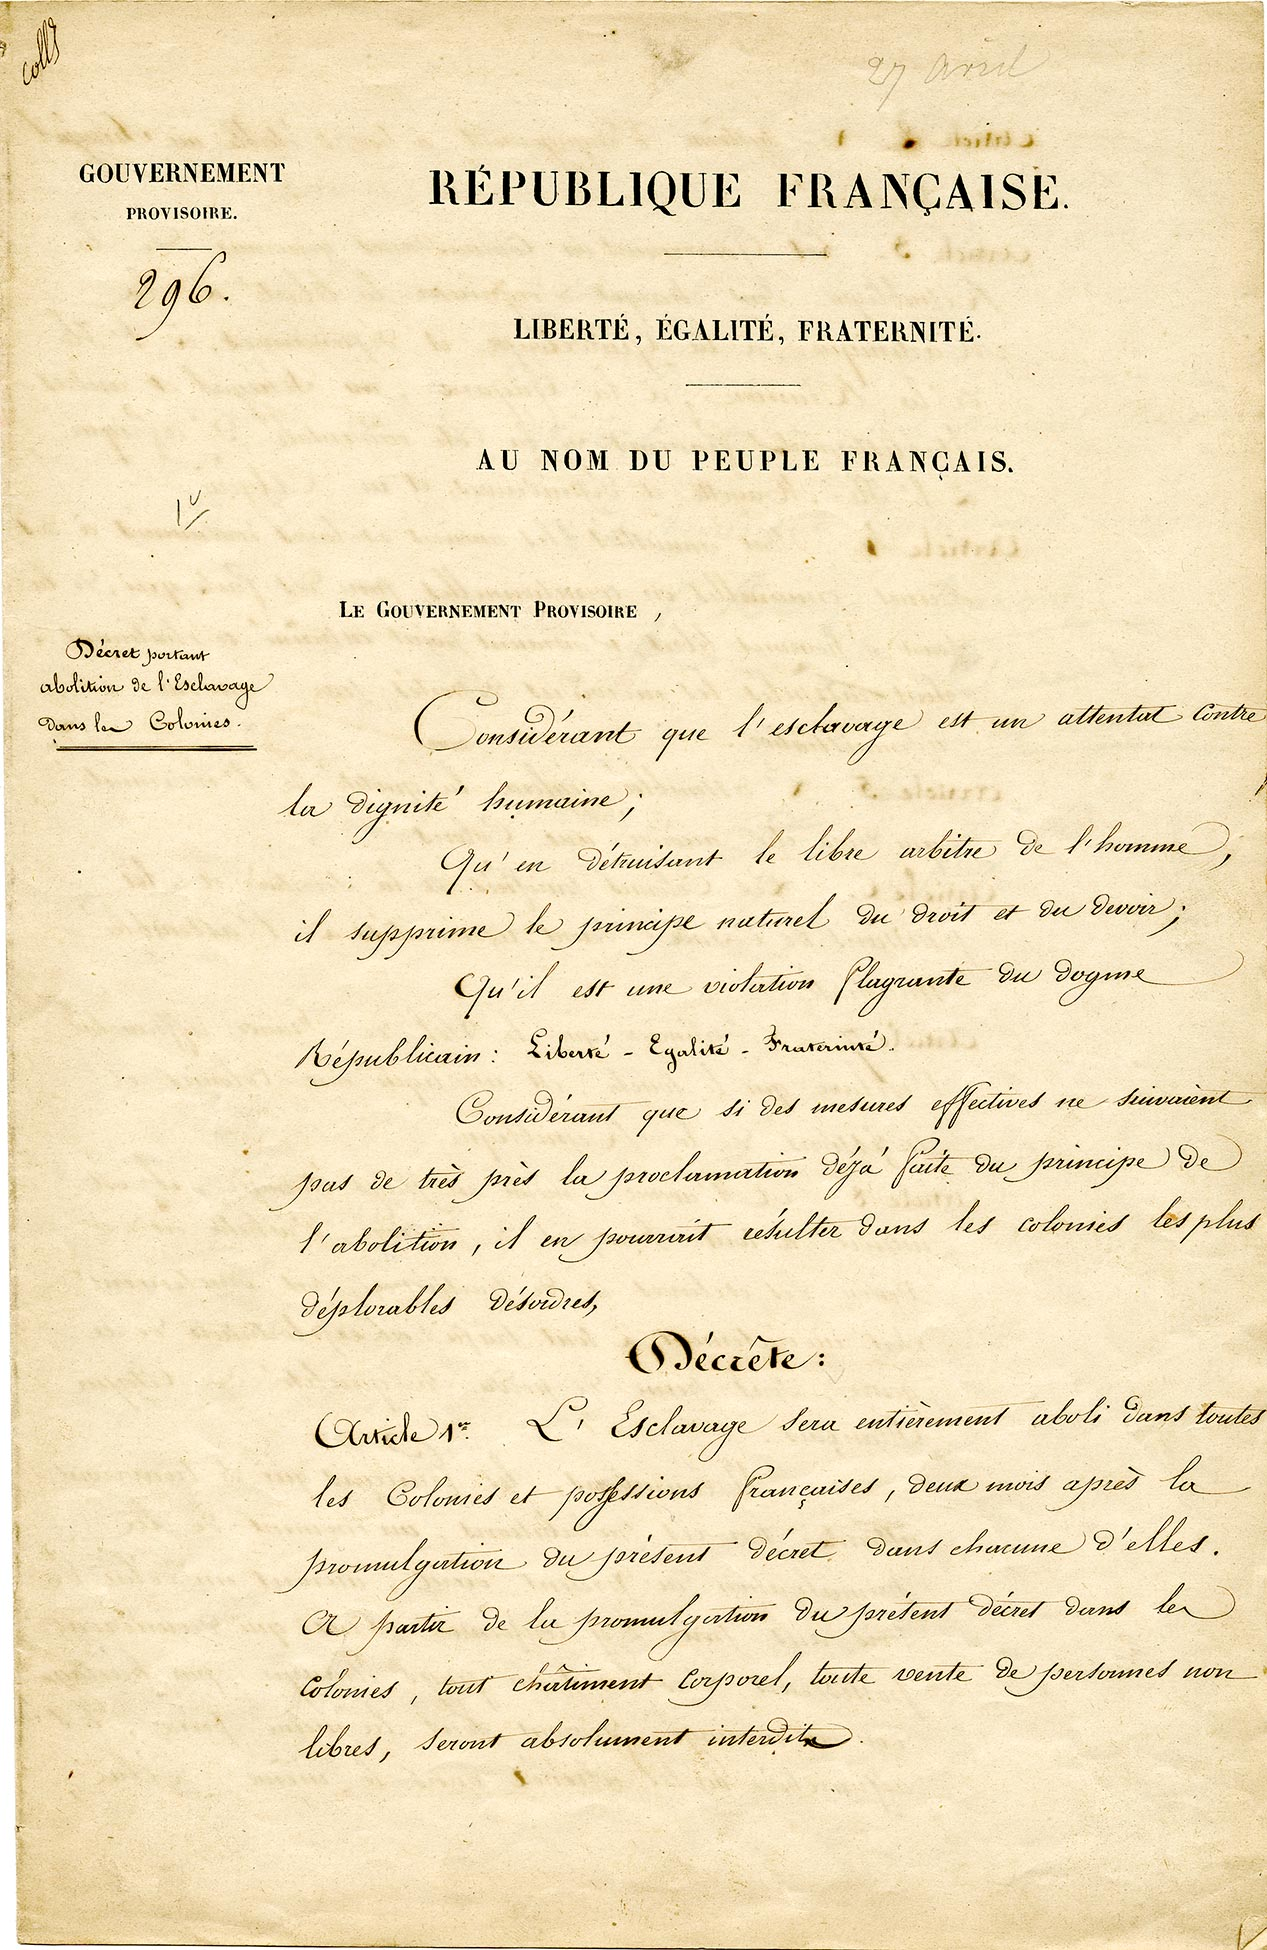 Decree of April 27, 1848 abolishing slavery in the French colonies.